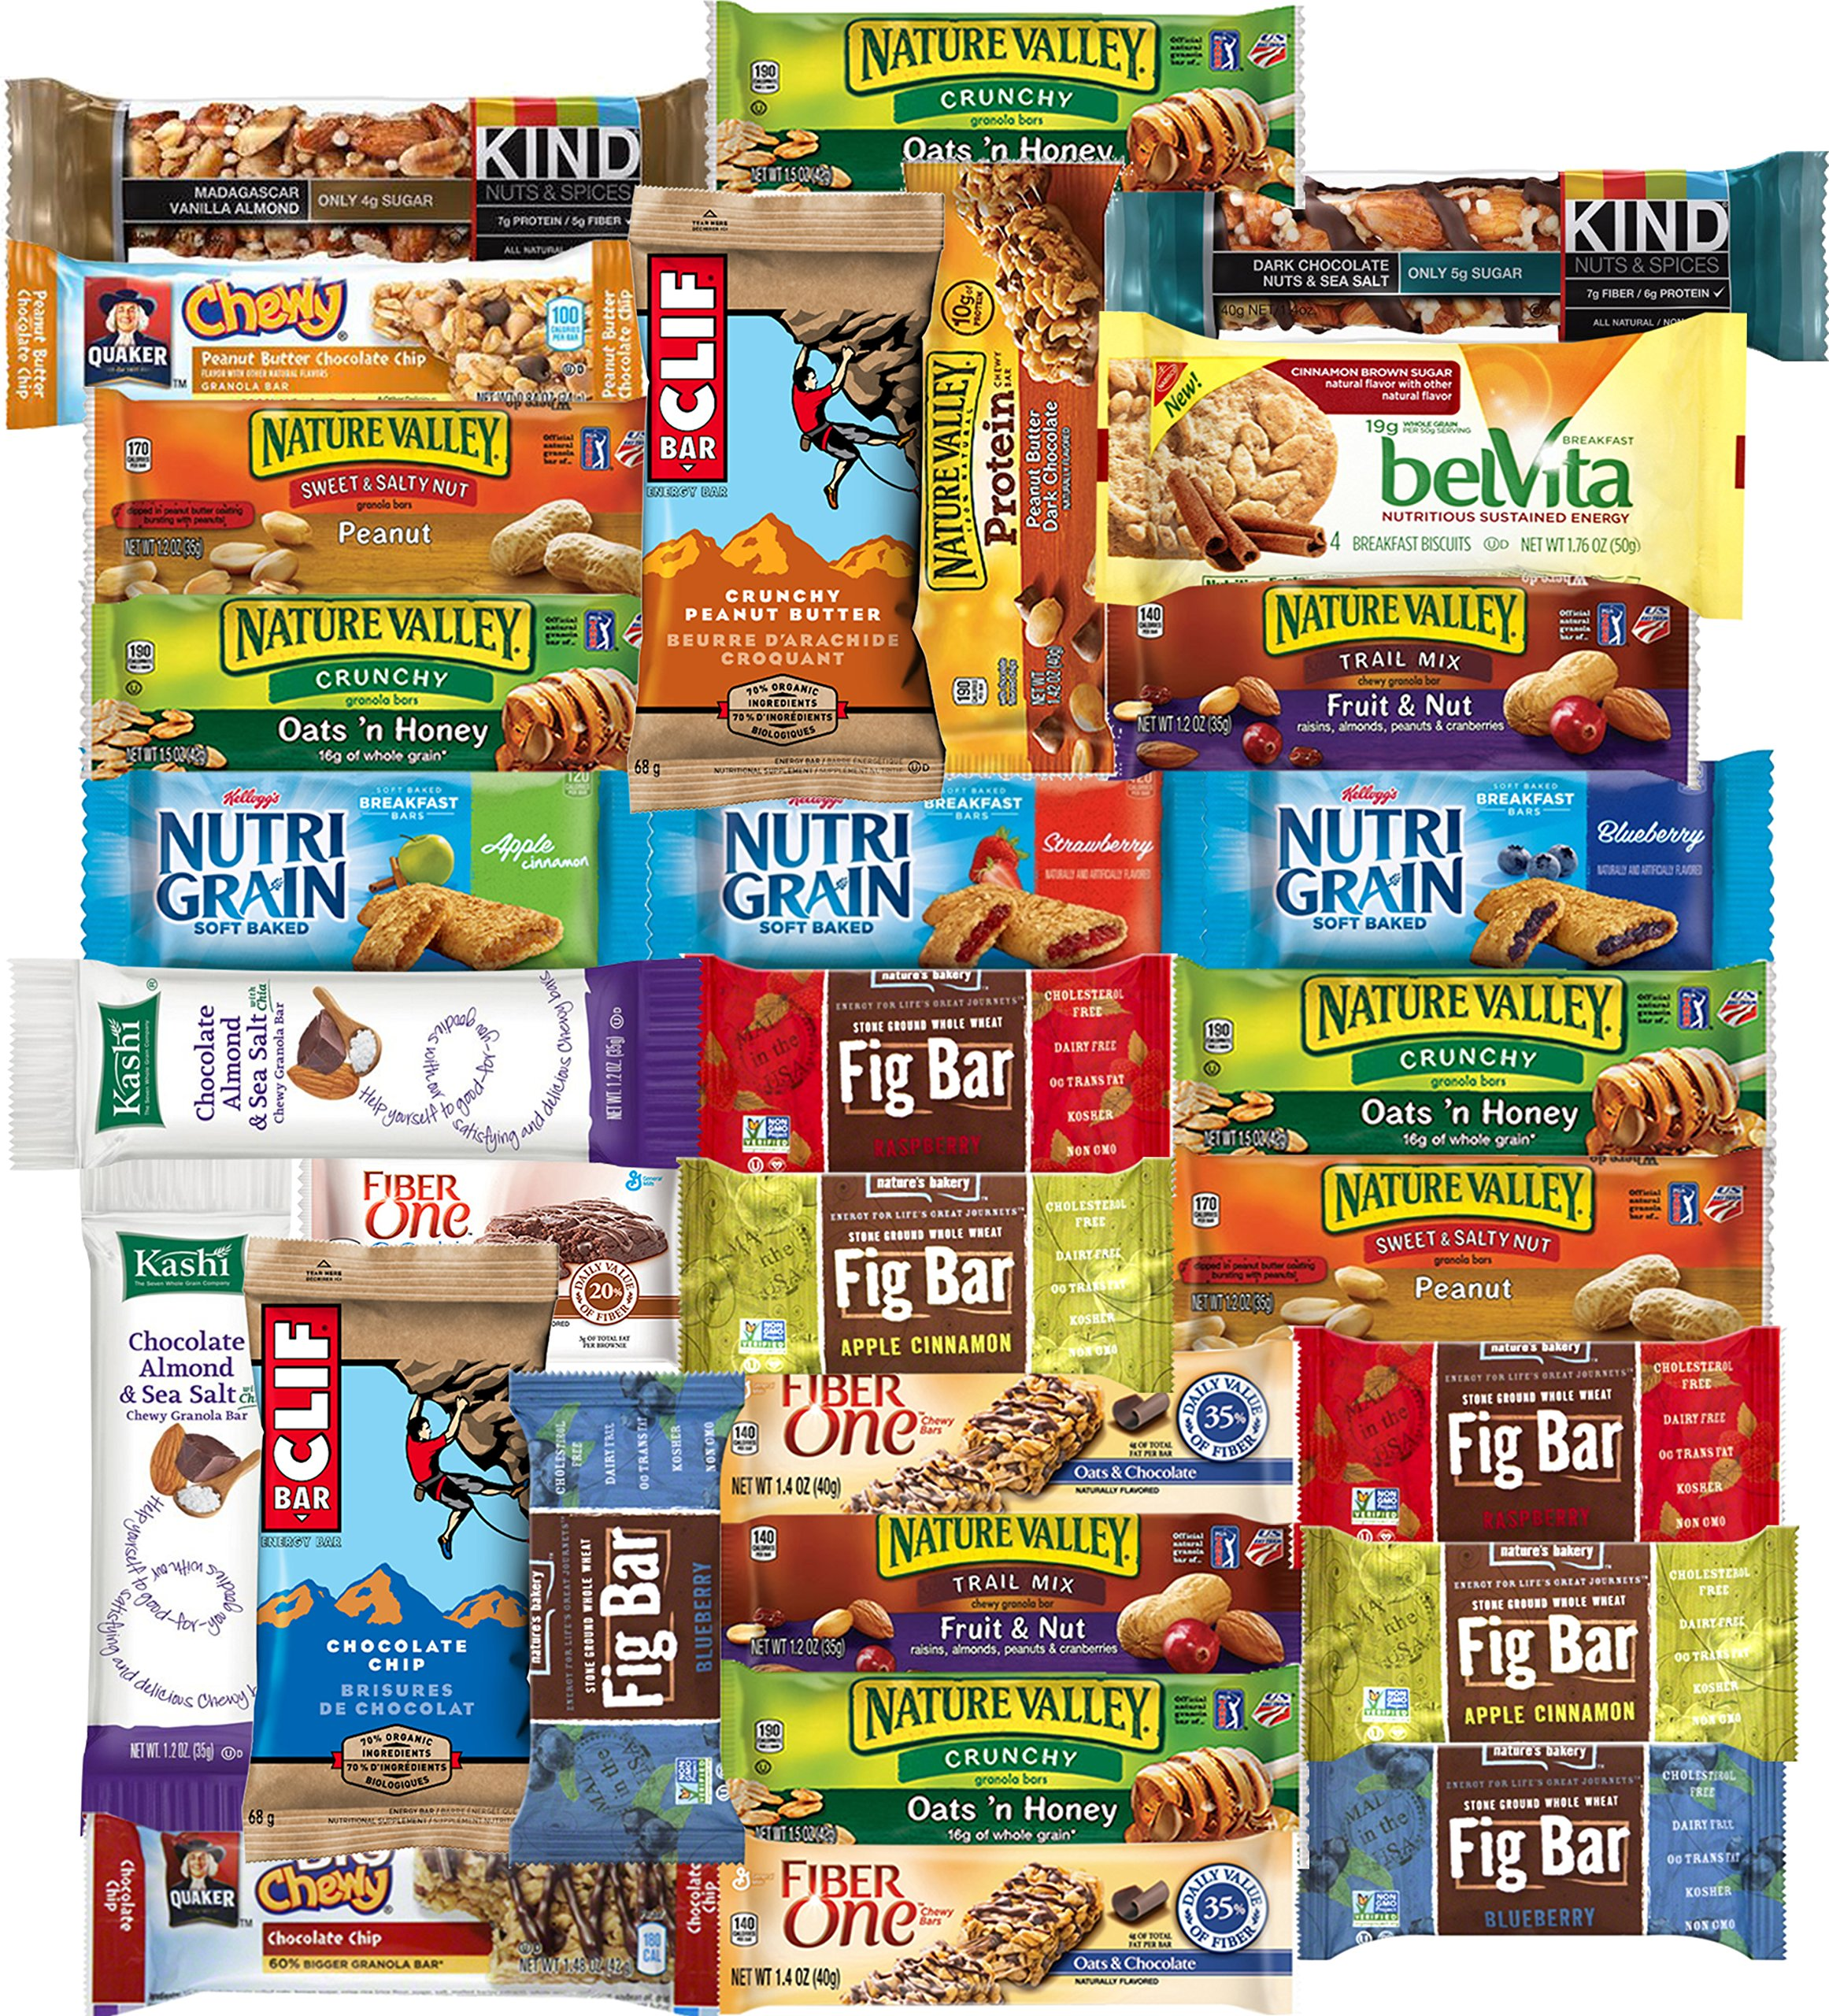 Healthy Bars Care Package Office Assortment Includes Kind Bar, Kashi, Fig Bars, Nature Valley & More (30 Count)